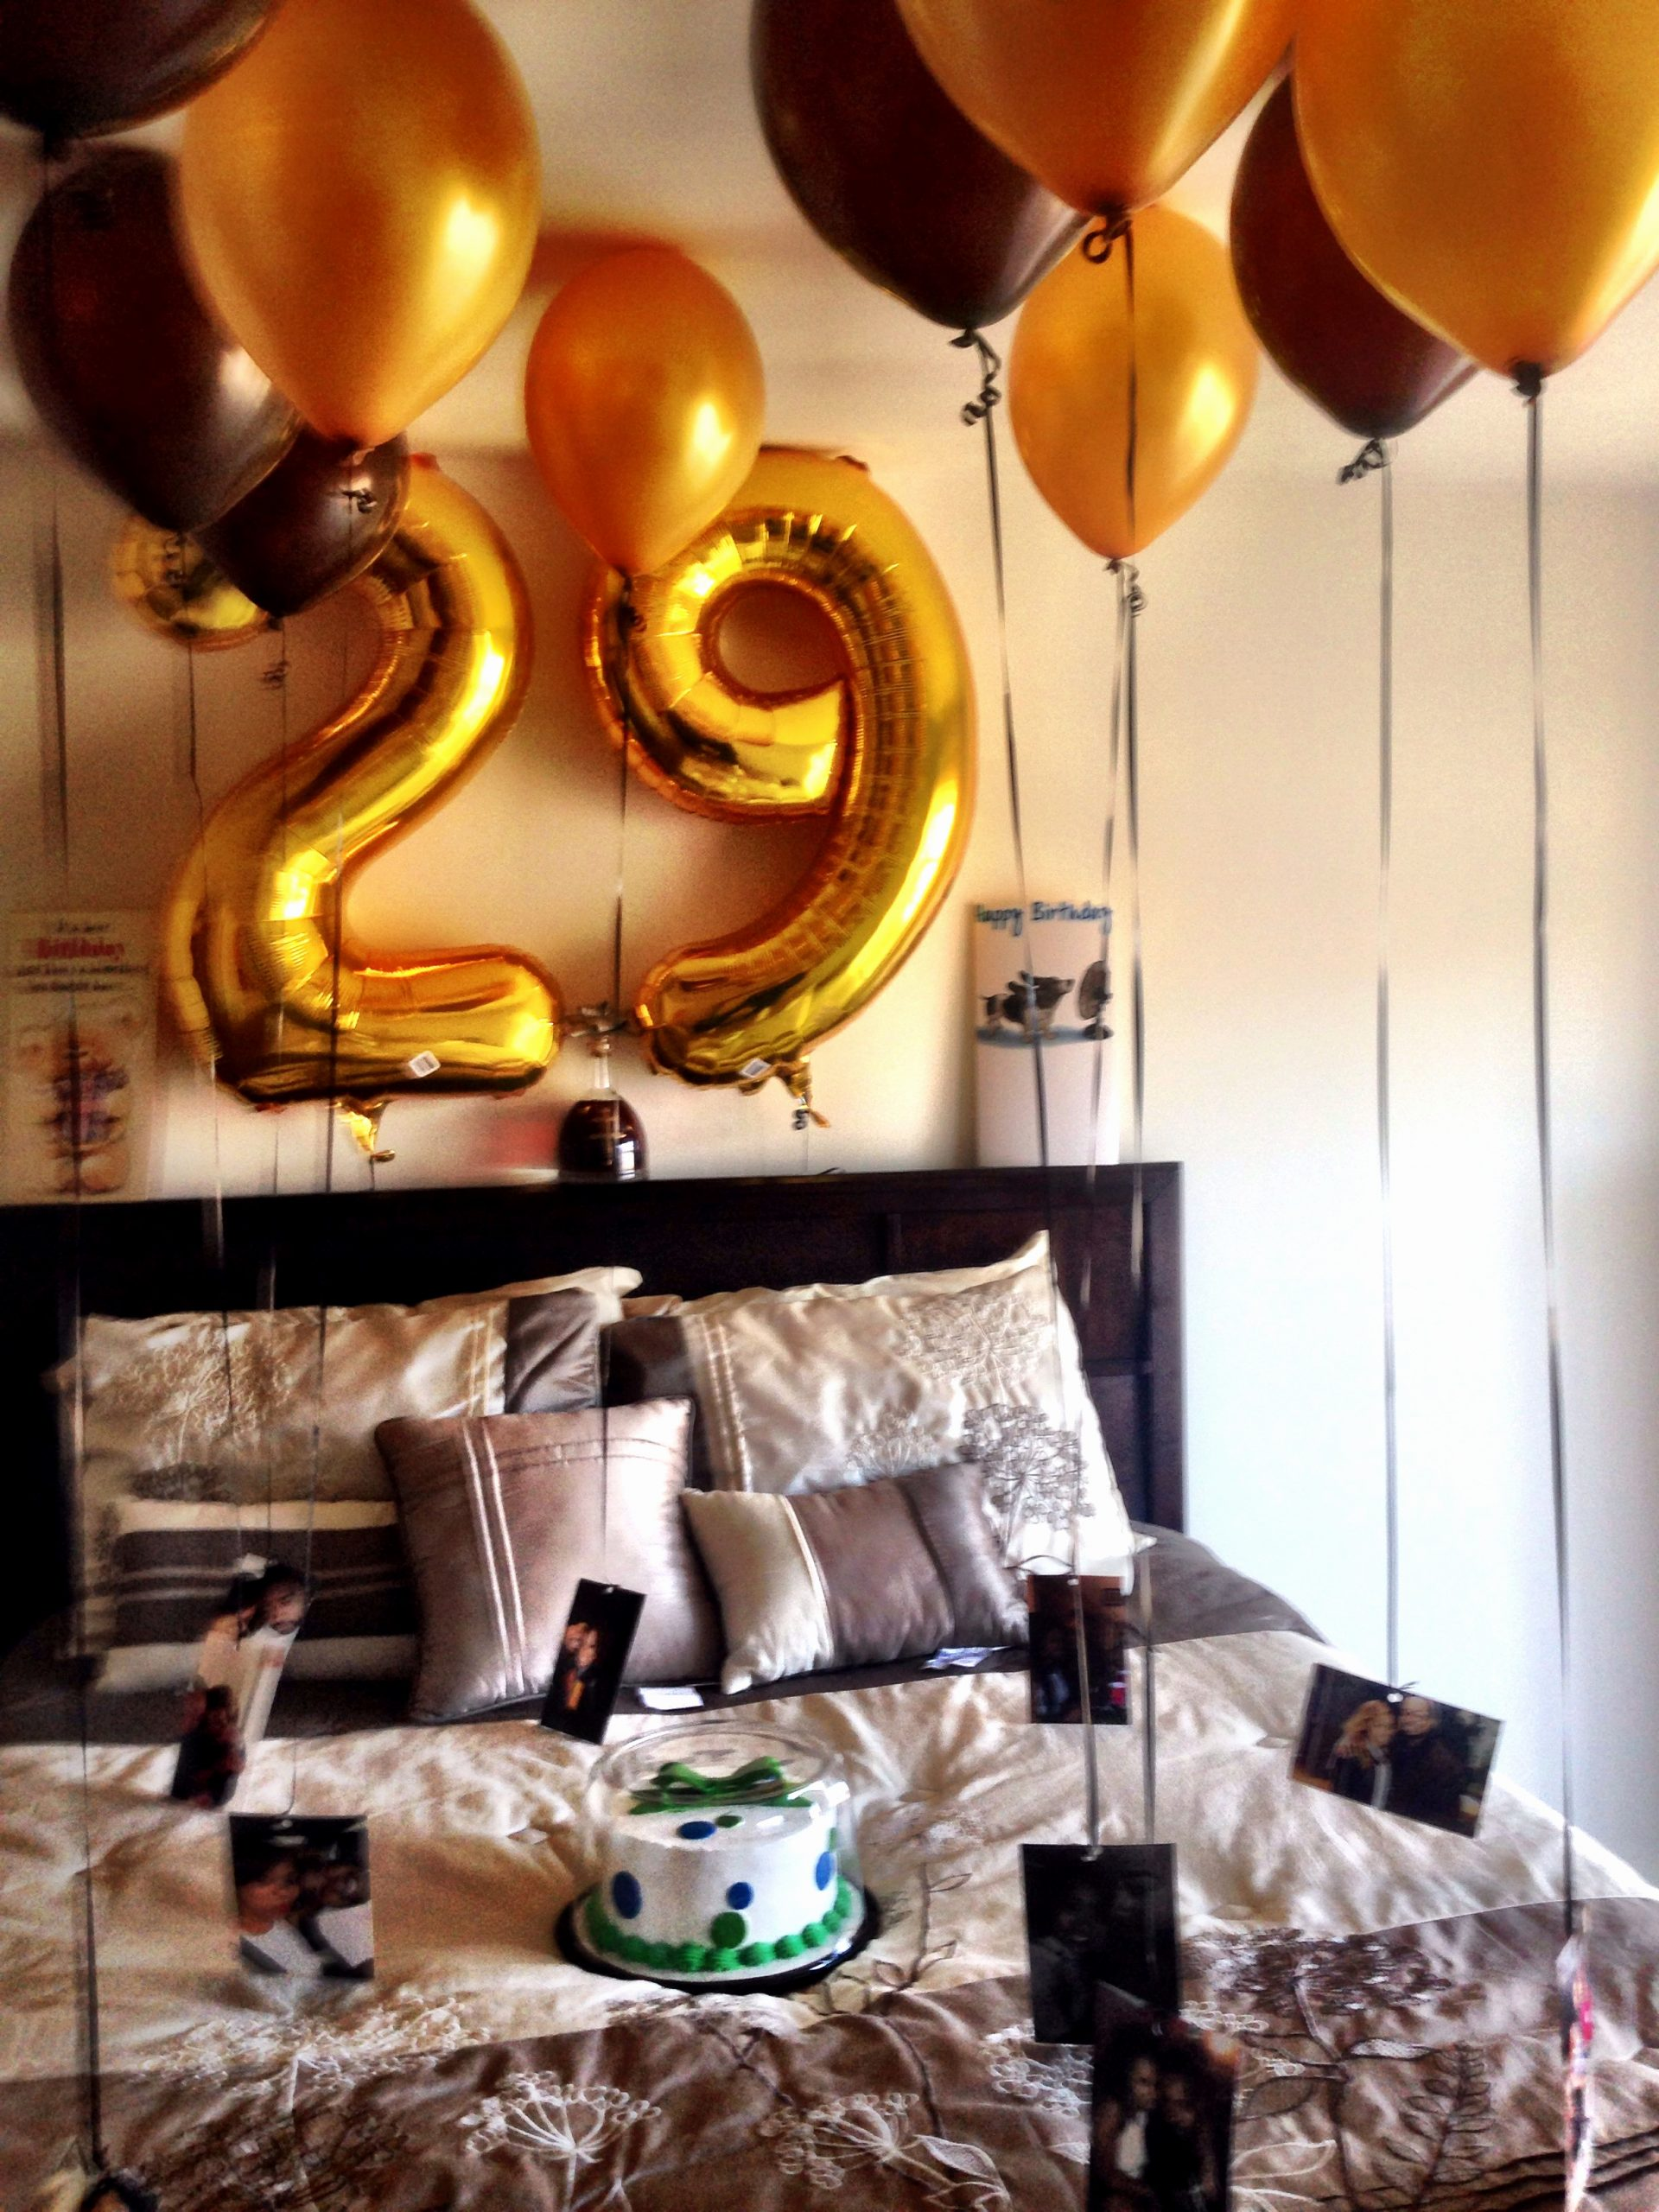 Birthday Decoration Ideas at Home for Wife Elegant Simple Birthday Decoration Ideas at Home for Boyfriend